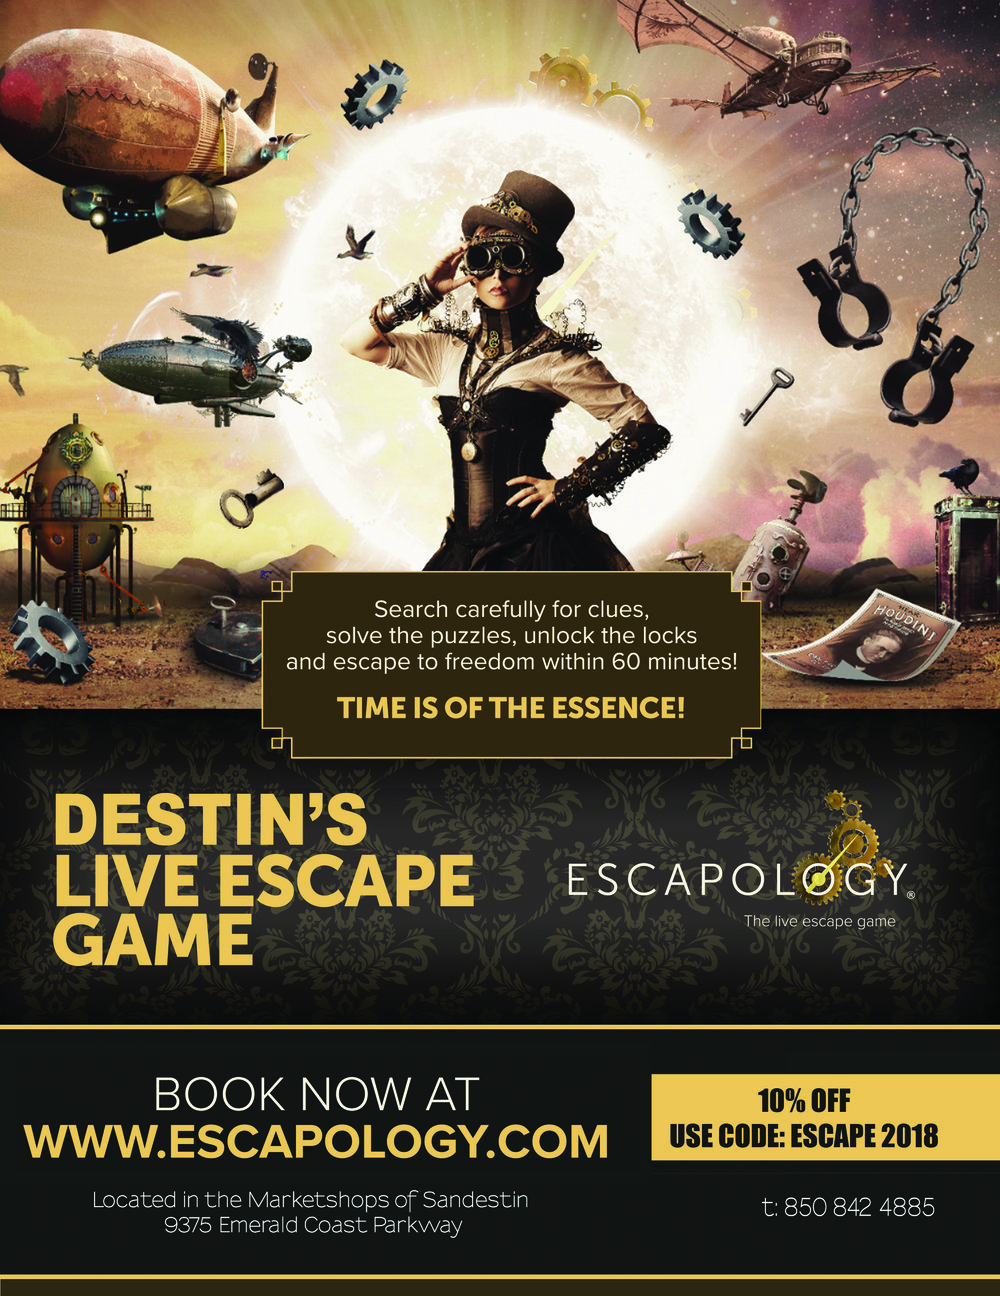 escapology july 2018.jpg